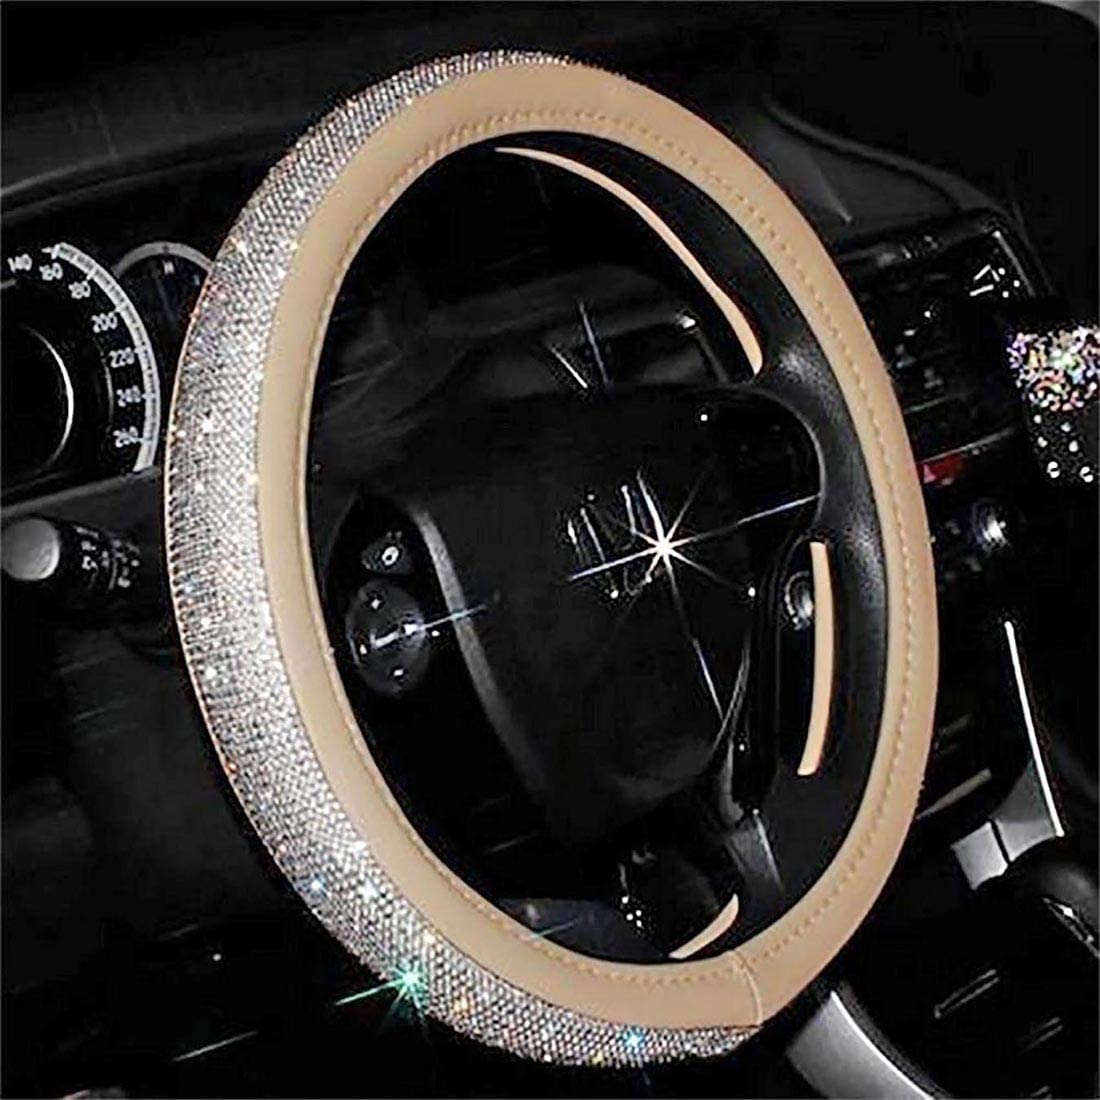 Black Otostar Luxury Litchi Soft Leather Crystal Steering Wheel Cover with 3444pcs Premium Bling Bling Full Diamond 15 inch